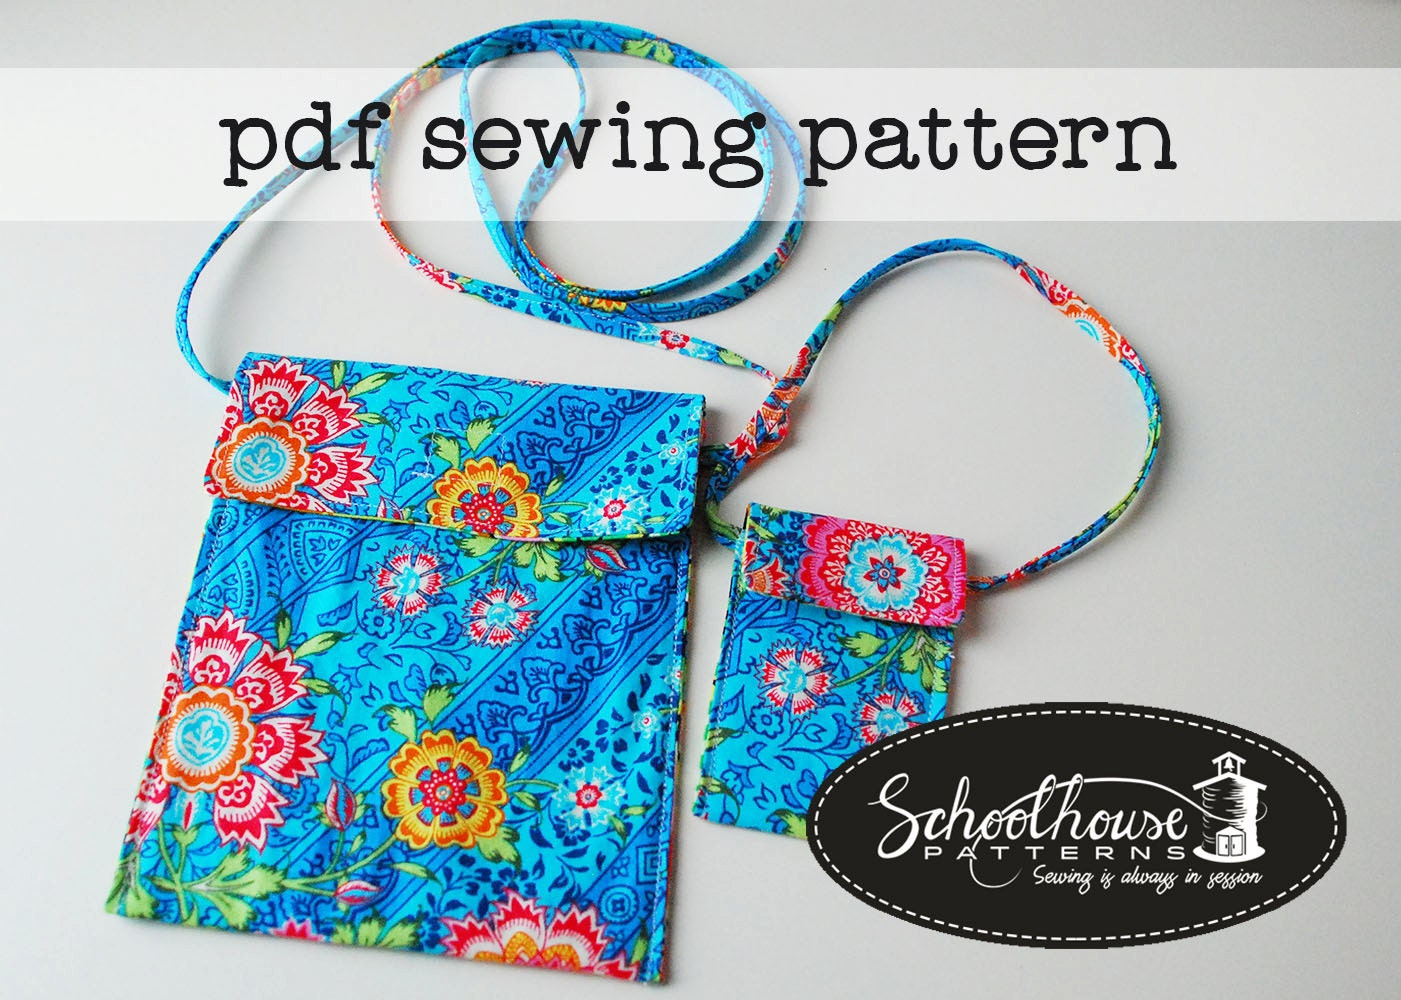 86d1caf28 Small Purse Patterns To Sew   Stanford Center for Opportunity Policy ...